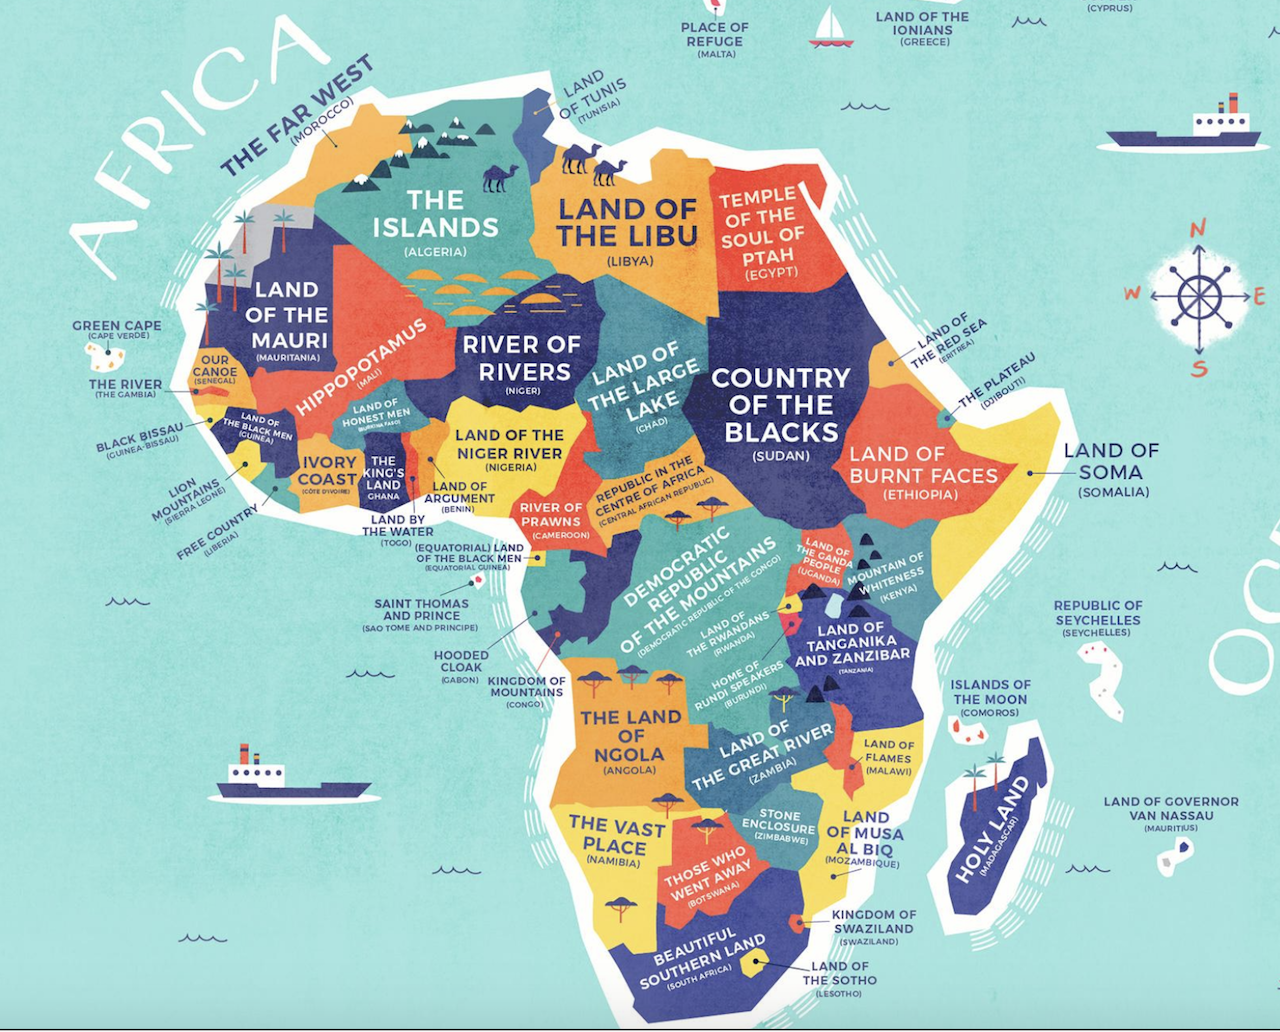 Map Of Africa With Country Names This map shows the literal meaning of every country's name